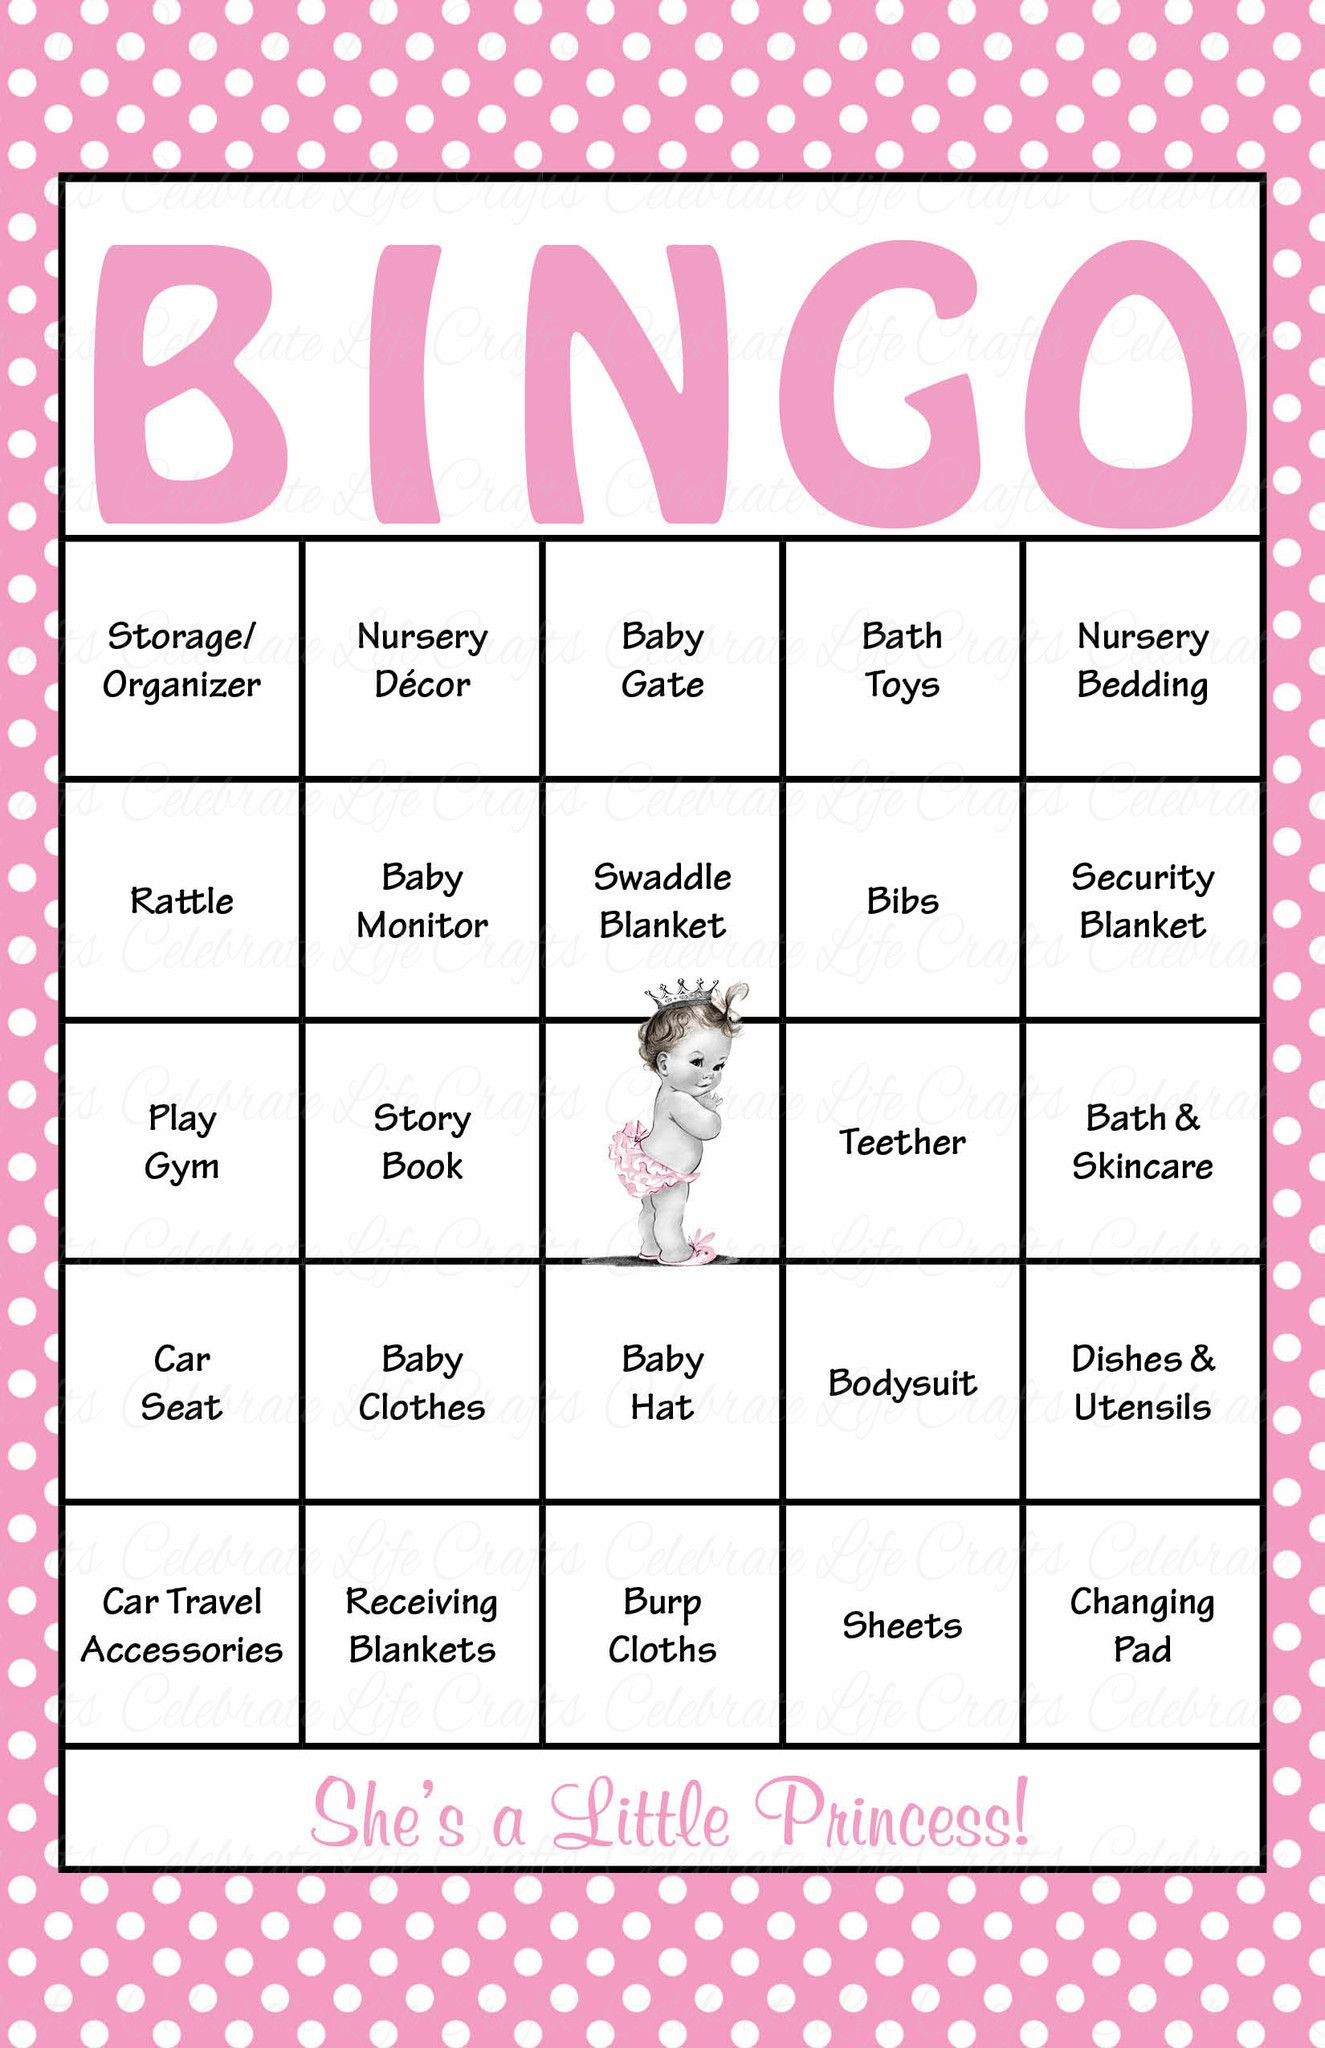 Princess Baby Bingo Cards - Printable Download - Prefilled